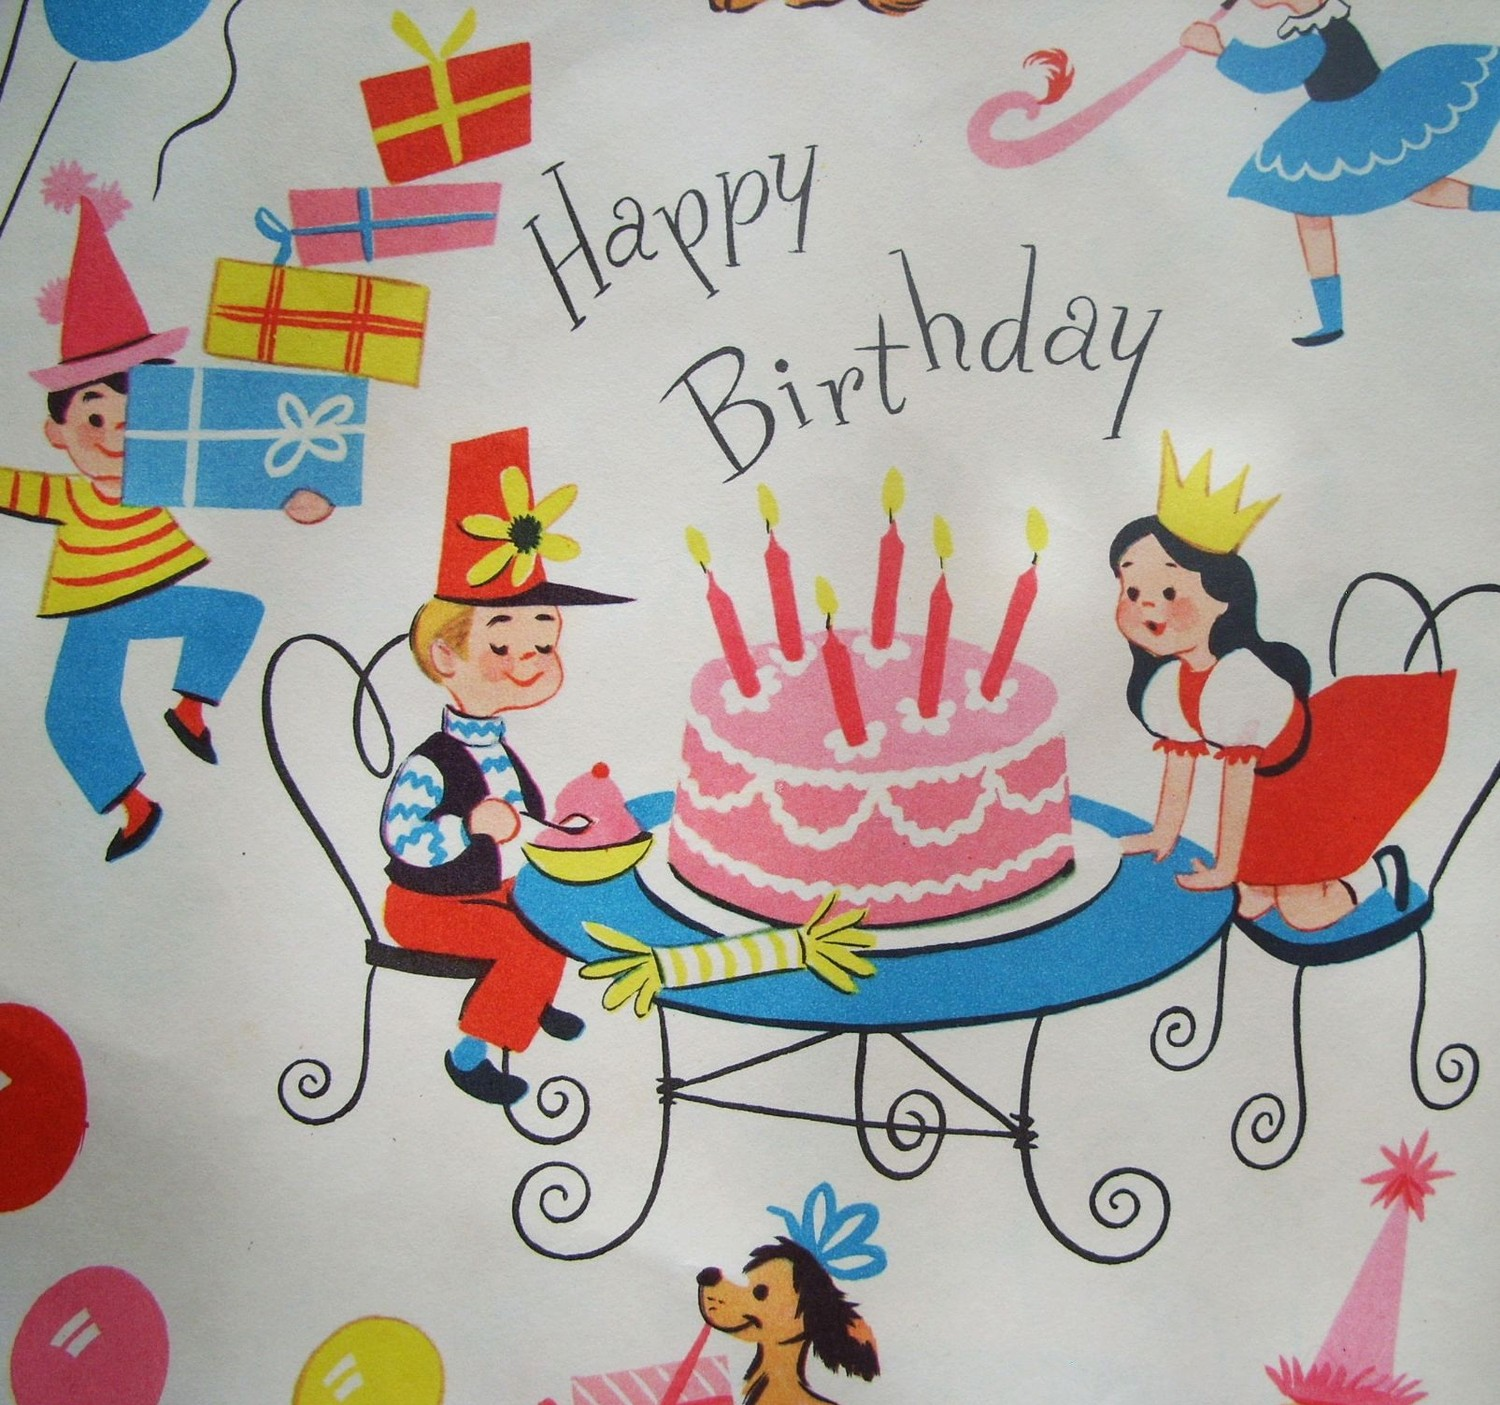 Lovely Birthday Wishes That Can Make Your Niece Happy on Her Birthday 1